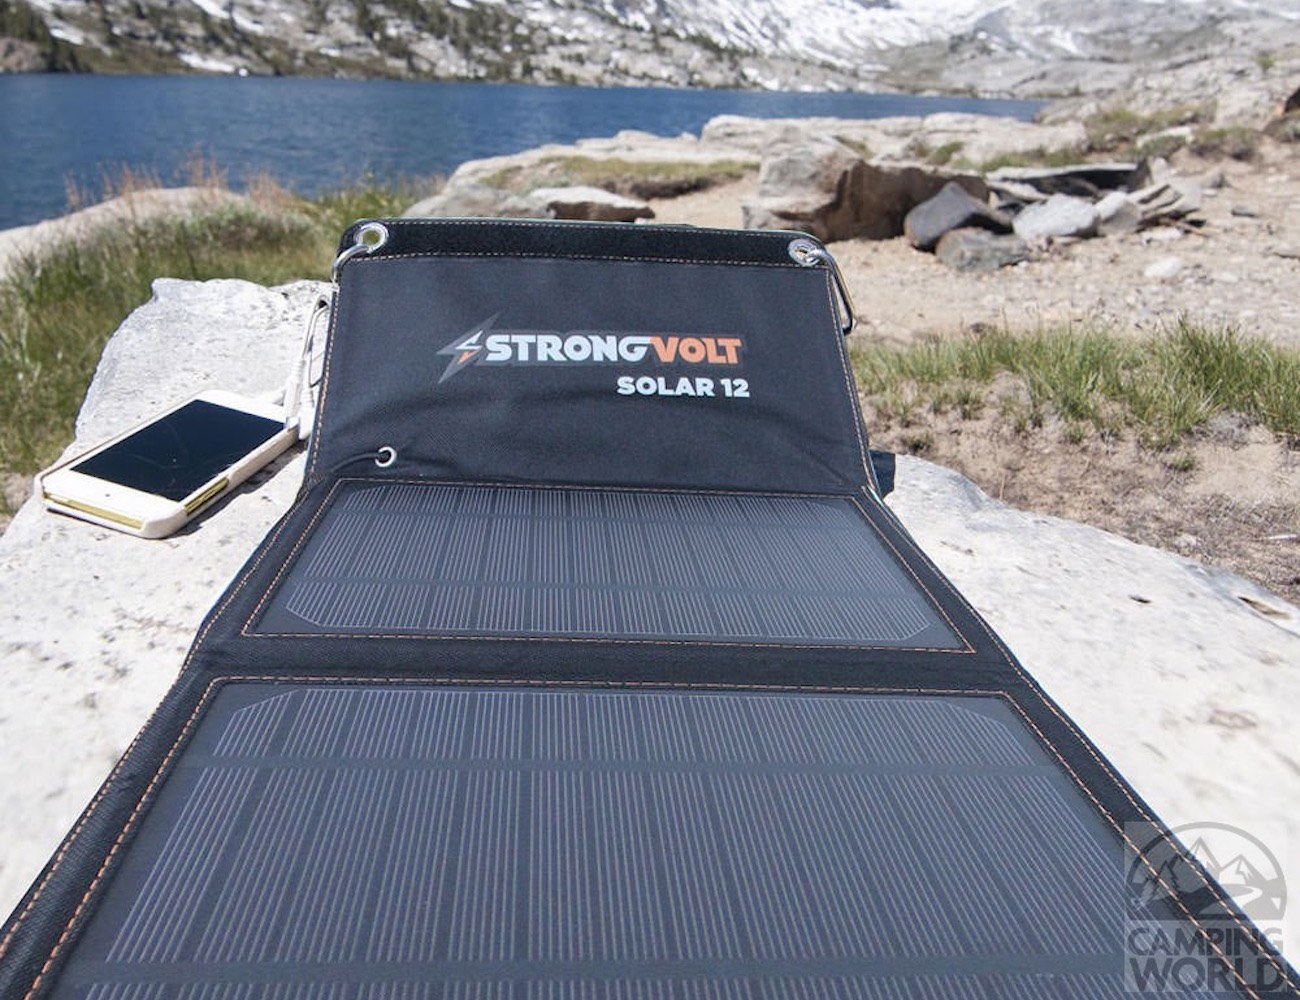 StrongVolt+Portable+Solar+Charger+With+SunTrack+Technology